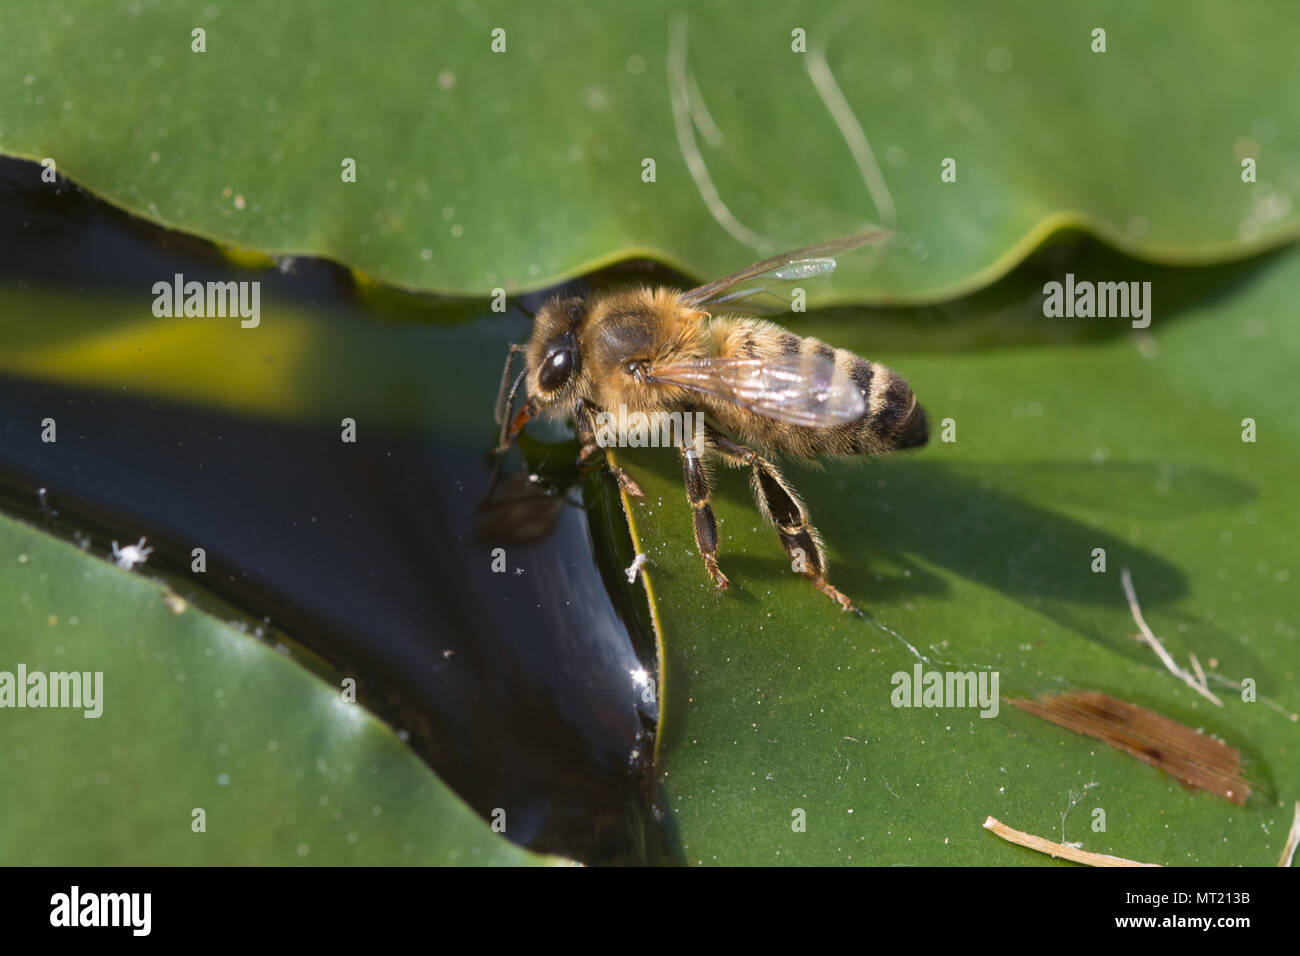 honey-bee-apis-on-a-lily-pad-drinking-water-from-a-garden-pond-garden-wildlife-insect-insects-bees-MT213B.jpg